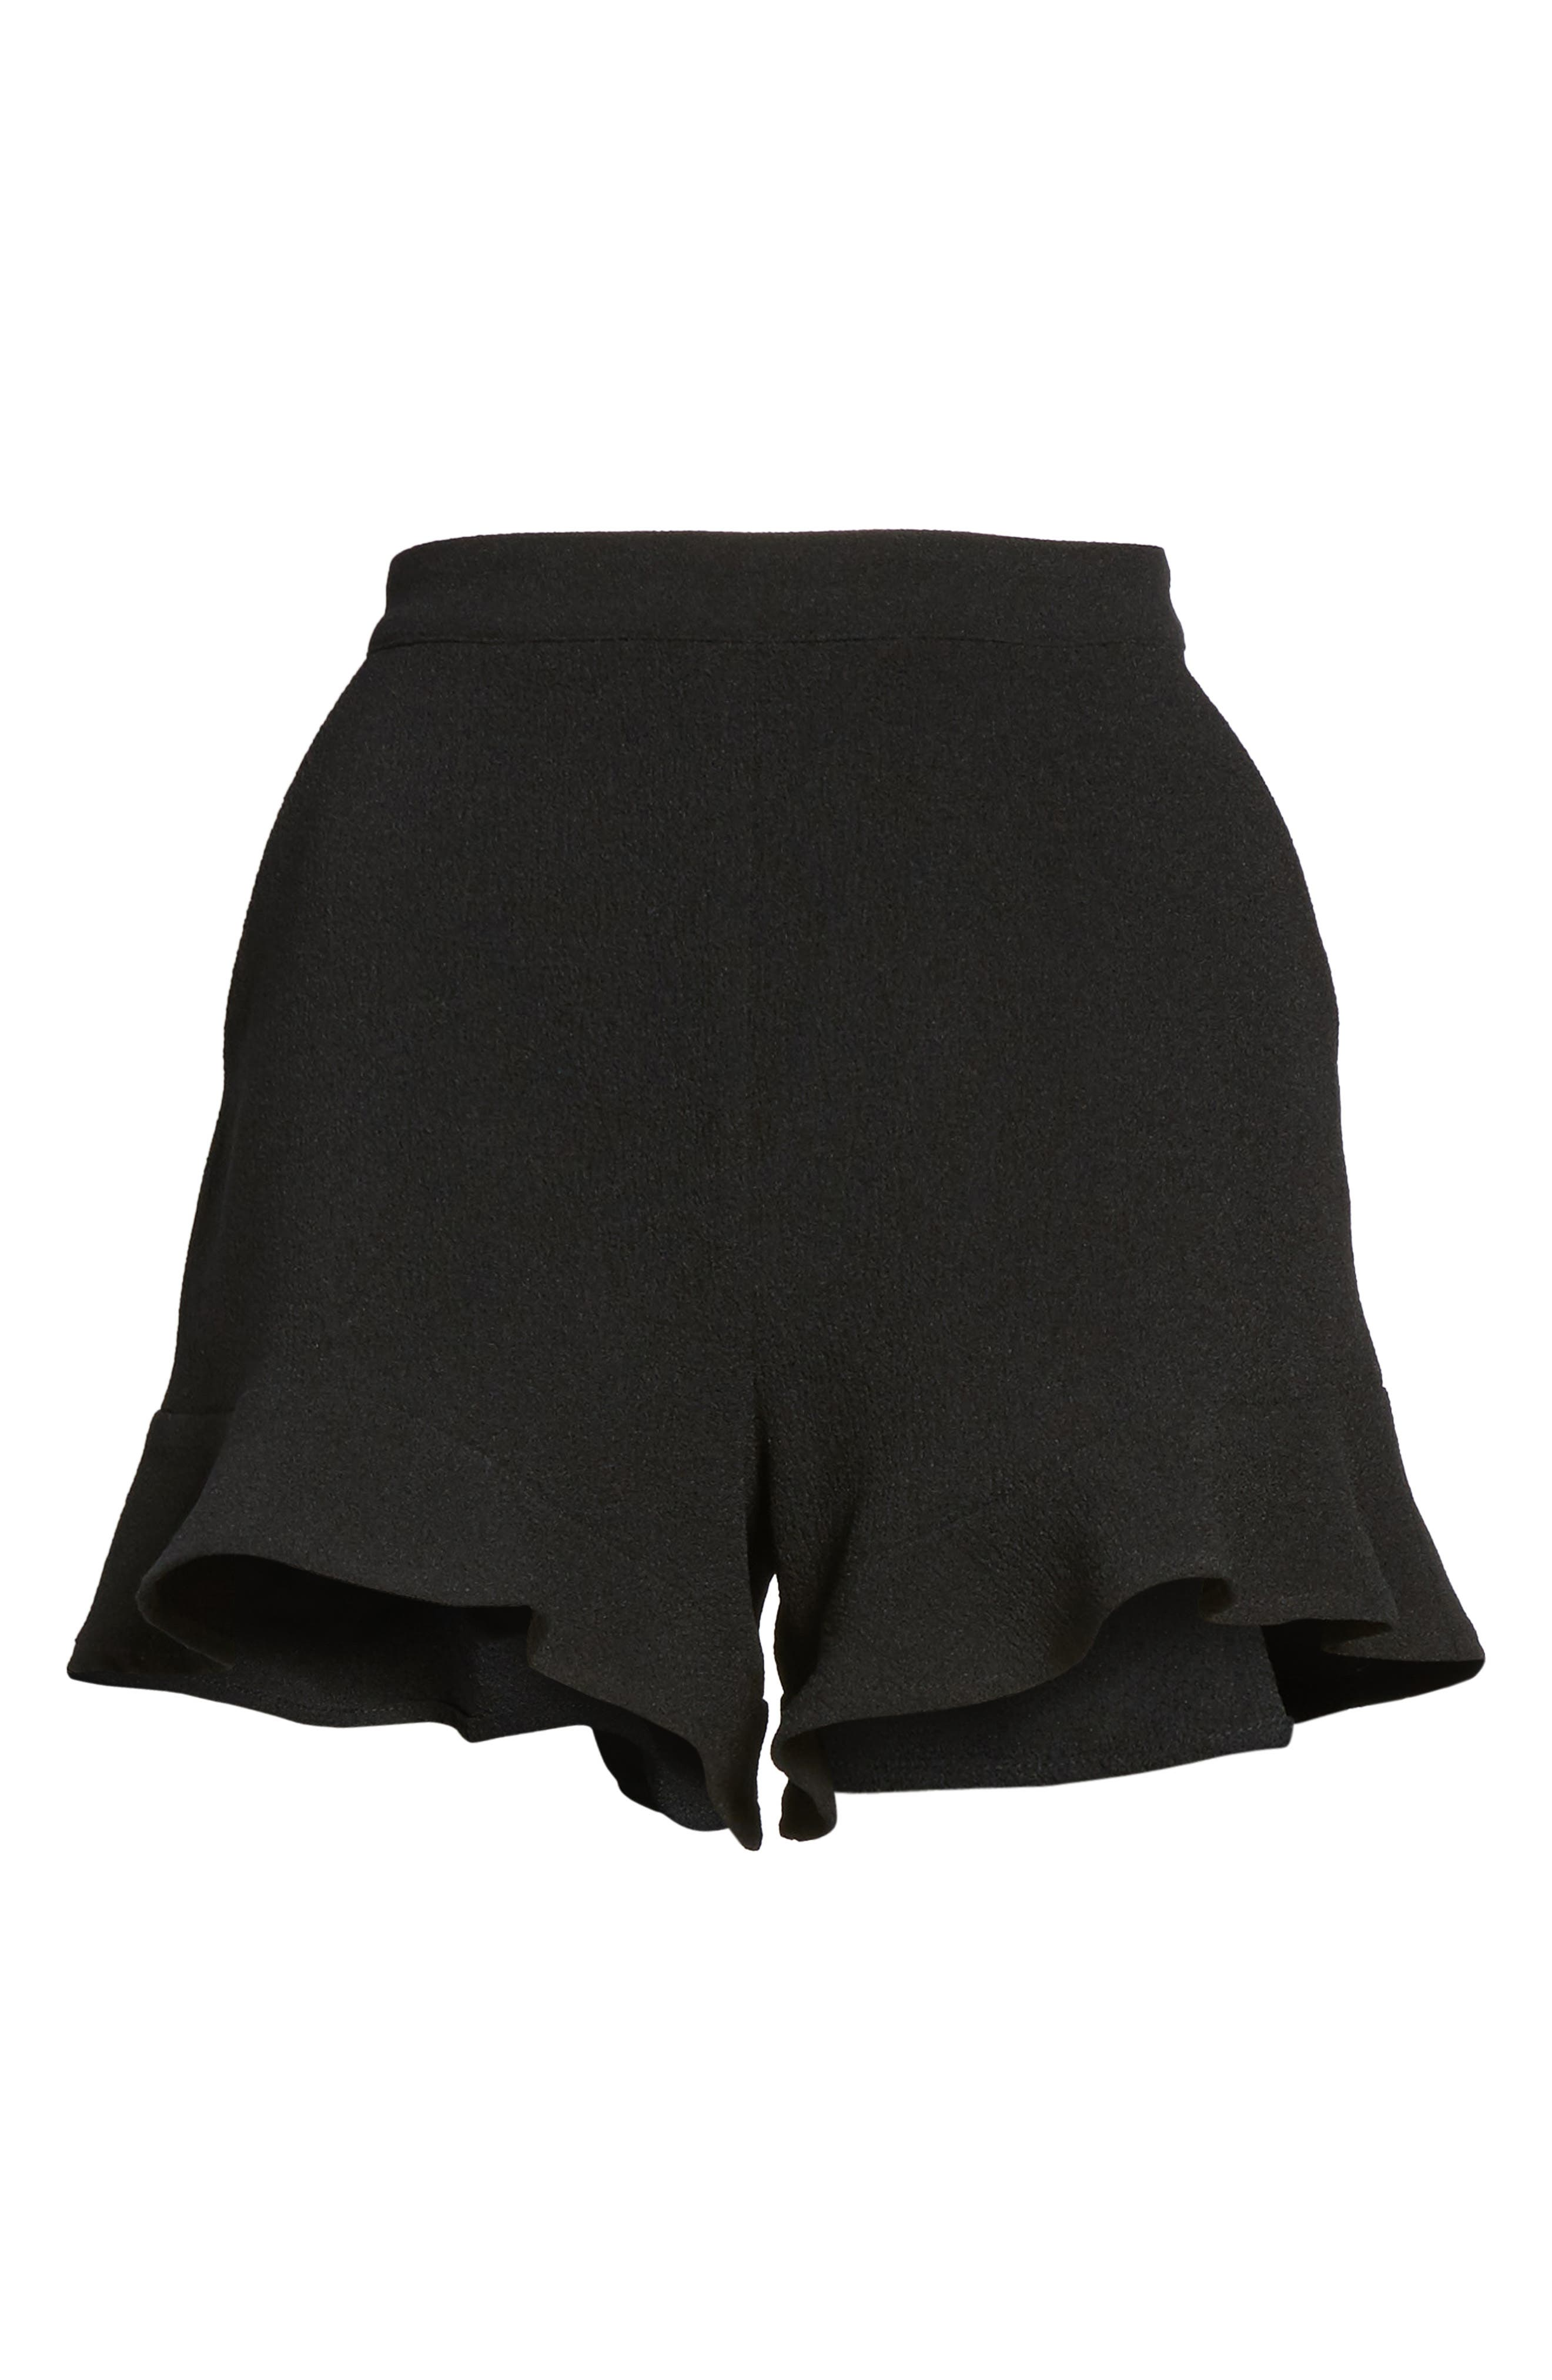 Ruffle Hem Shorts,                             Alternate thumbnail 6, color,                             001